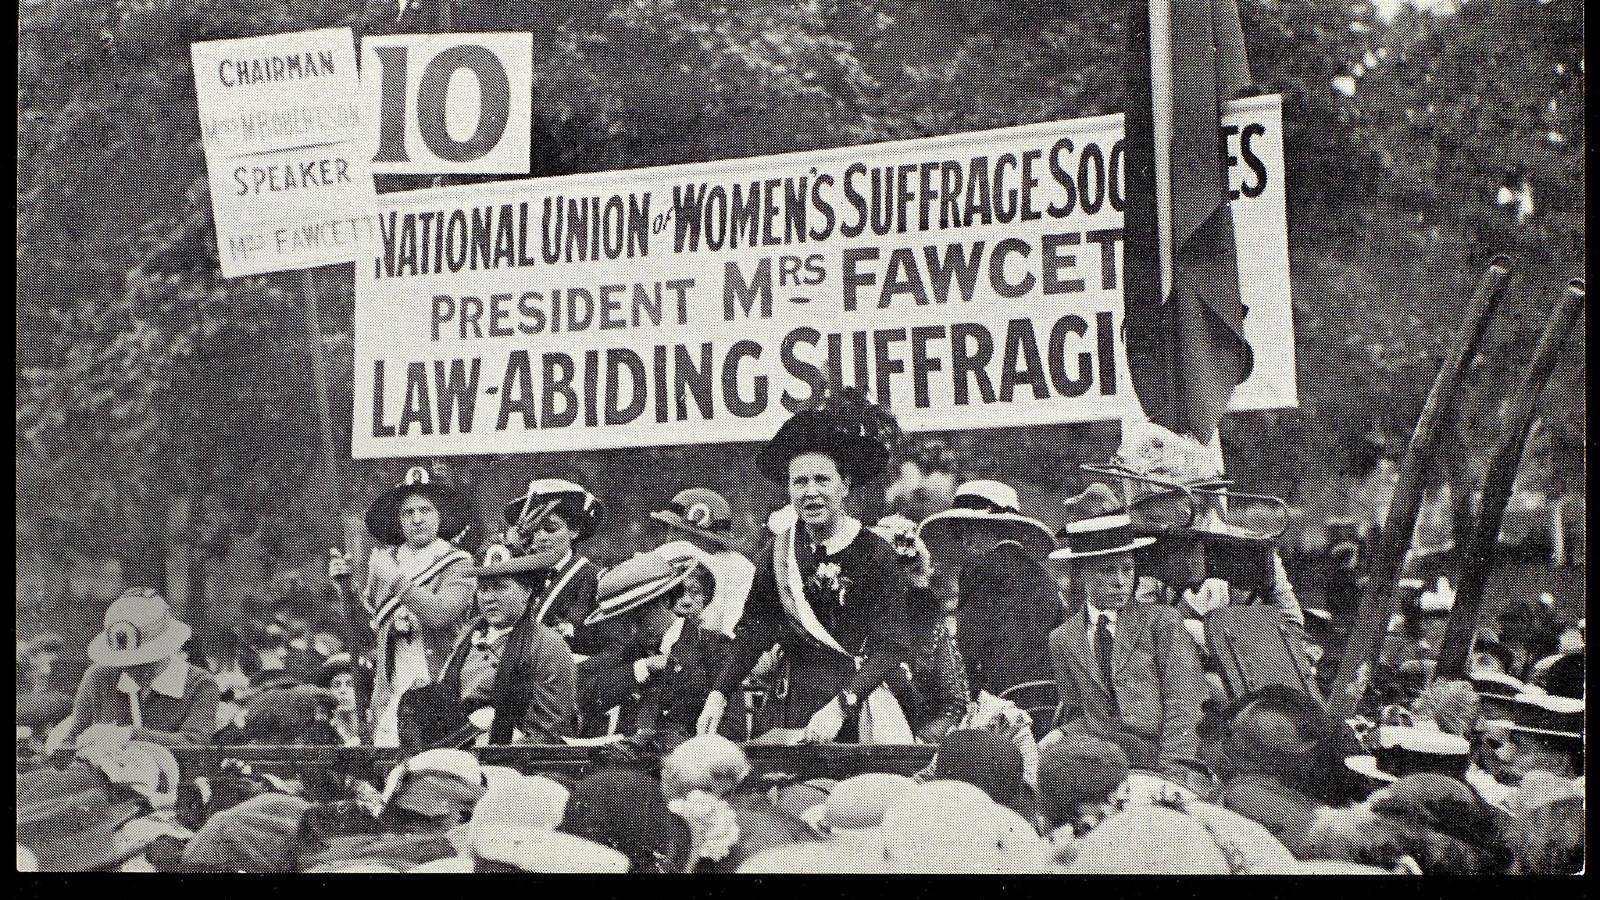 A group of people with banners and placards at a protest looking into the camera. One of them is Millicent Garrett Fawcett who is speaking at this protest as indicated by the banner above her head.